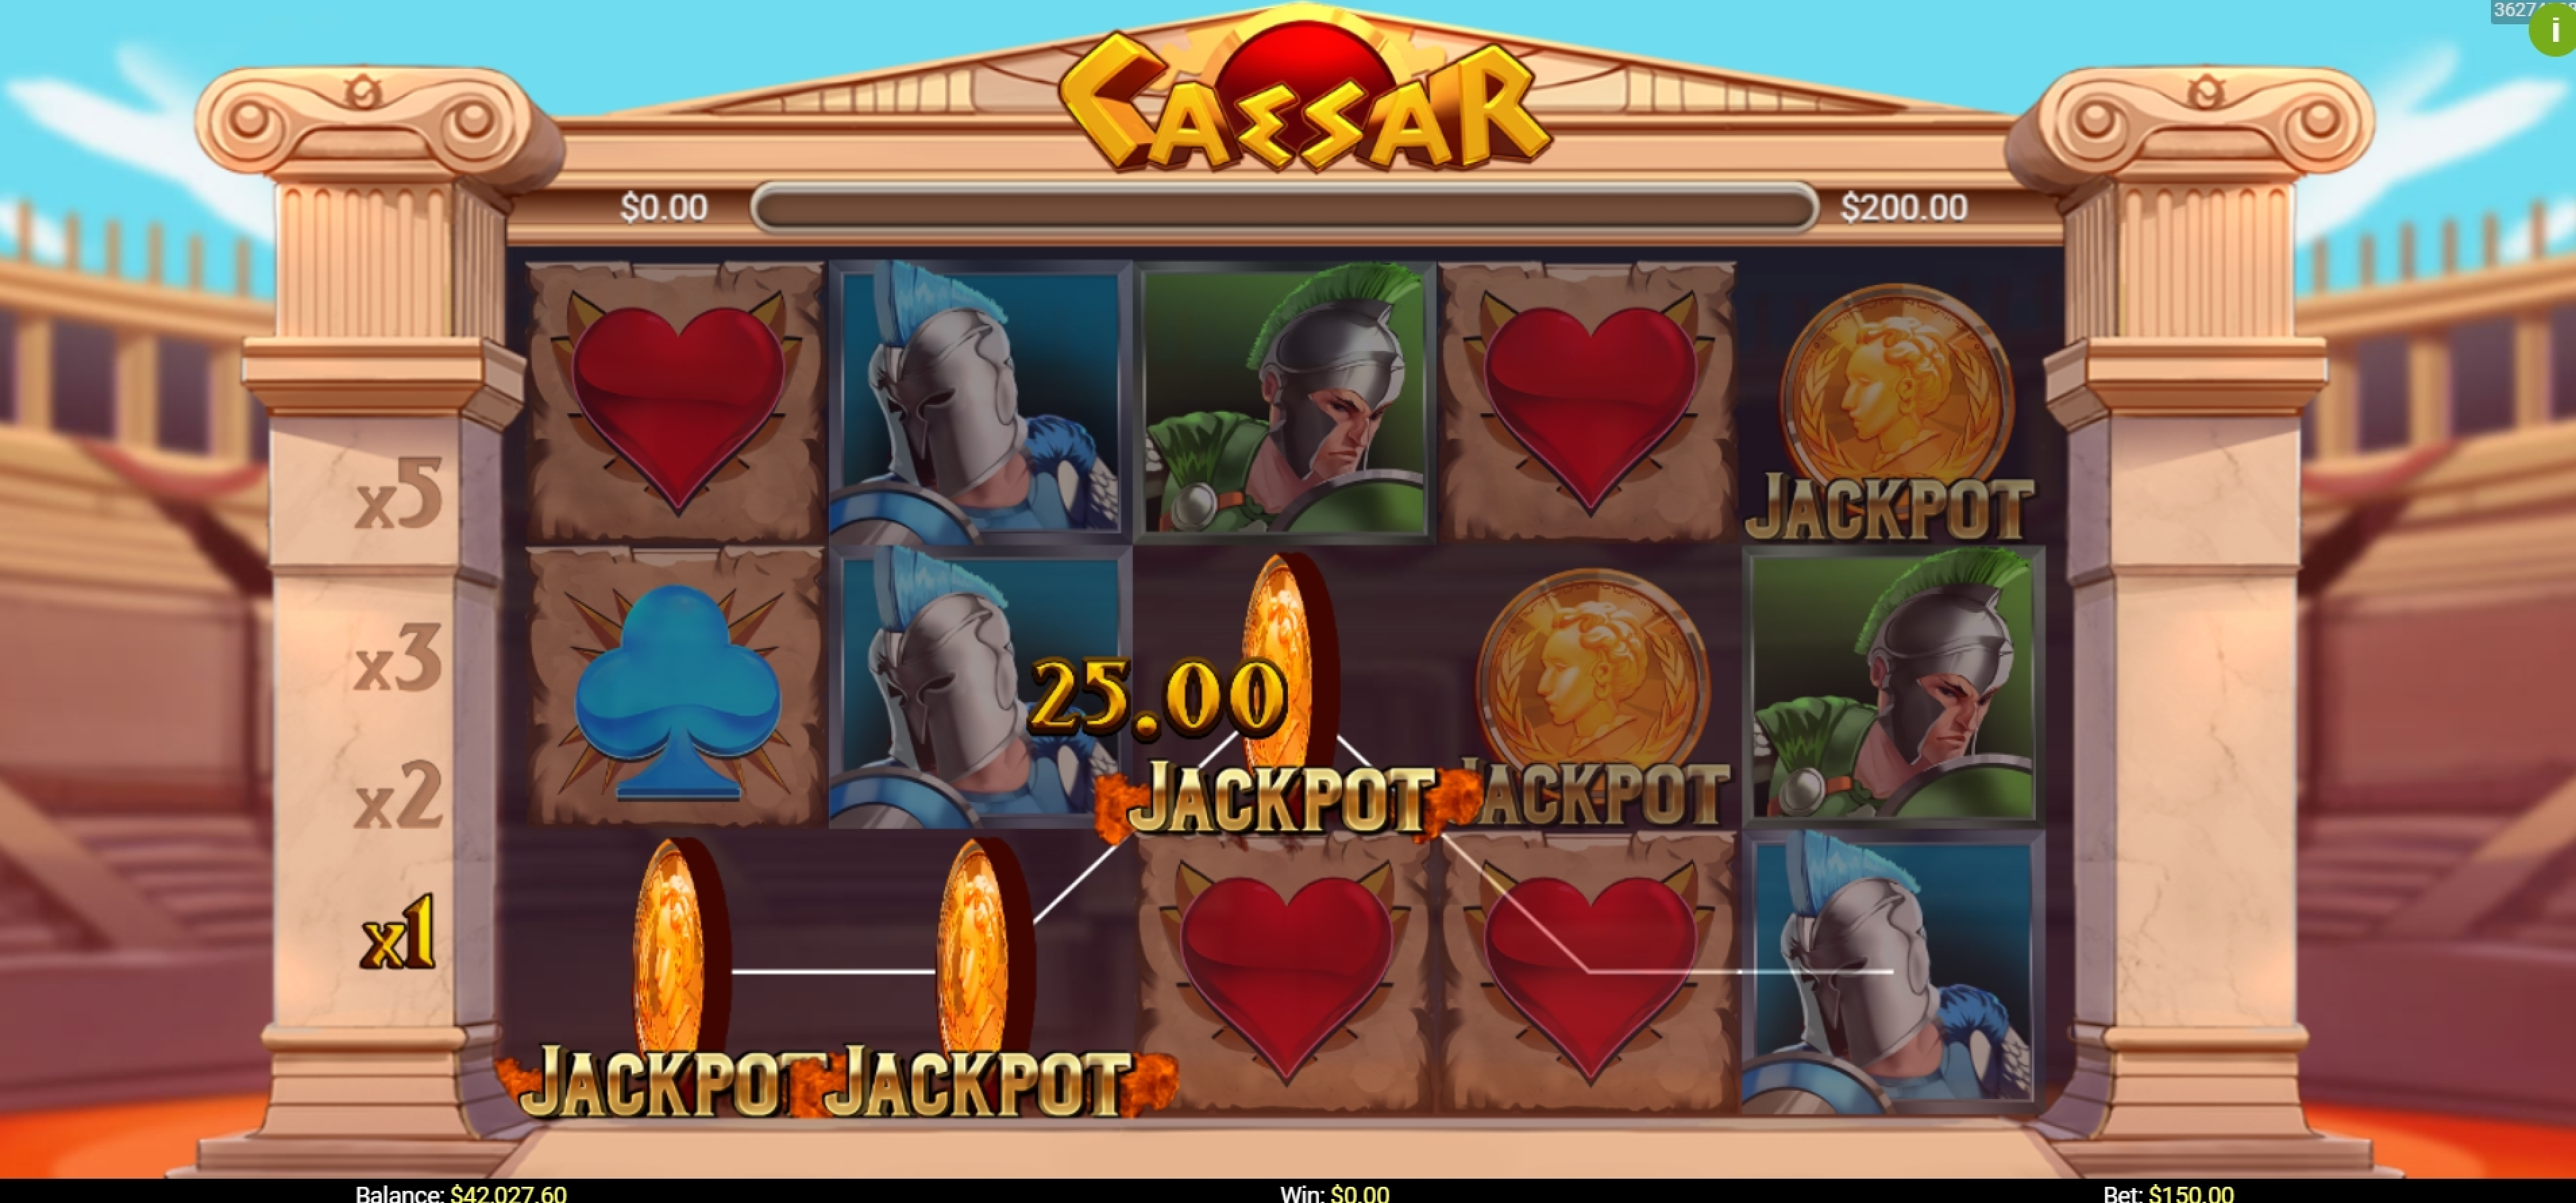 Win Money in Caesar (Mobilots) Free Slot Game by Mobilots